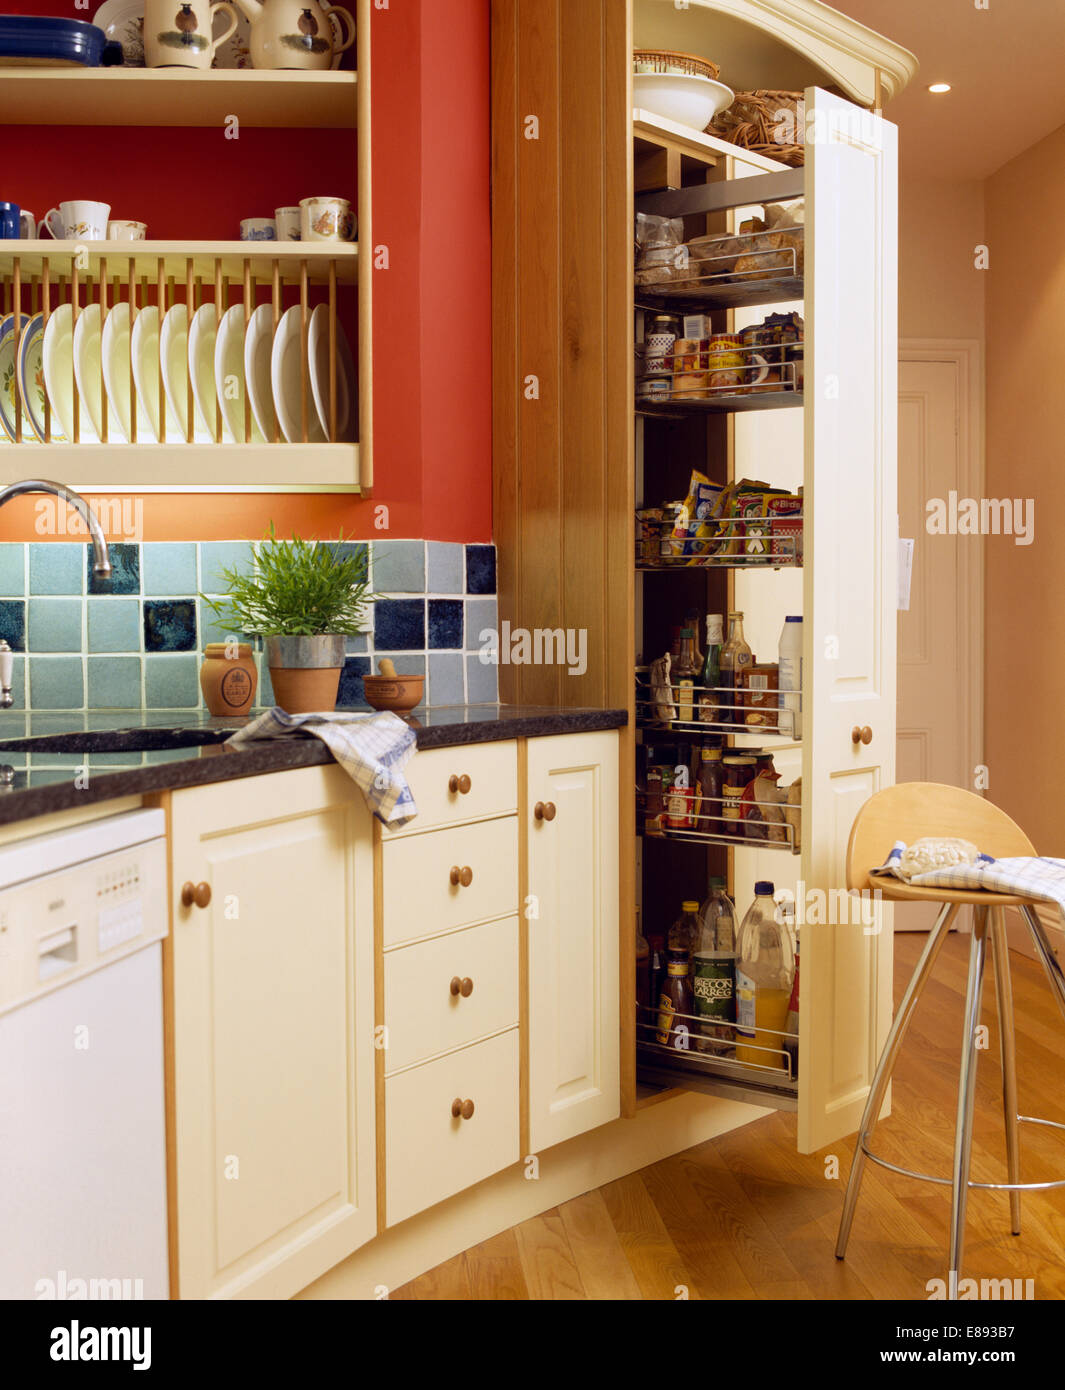 Pull Out Storage Drawers In Larder Cupboard In Kitchen With Blue Tiled  Splashback Below Plate Rack